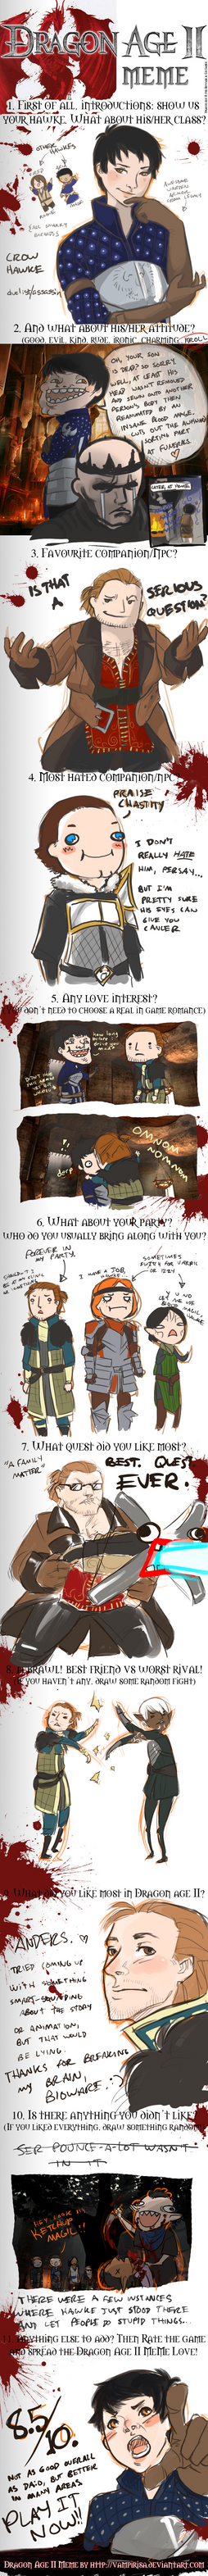 dragon age 2 meme by kyuubifred